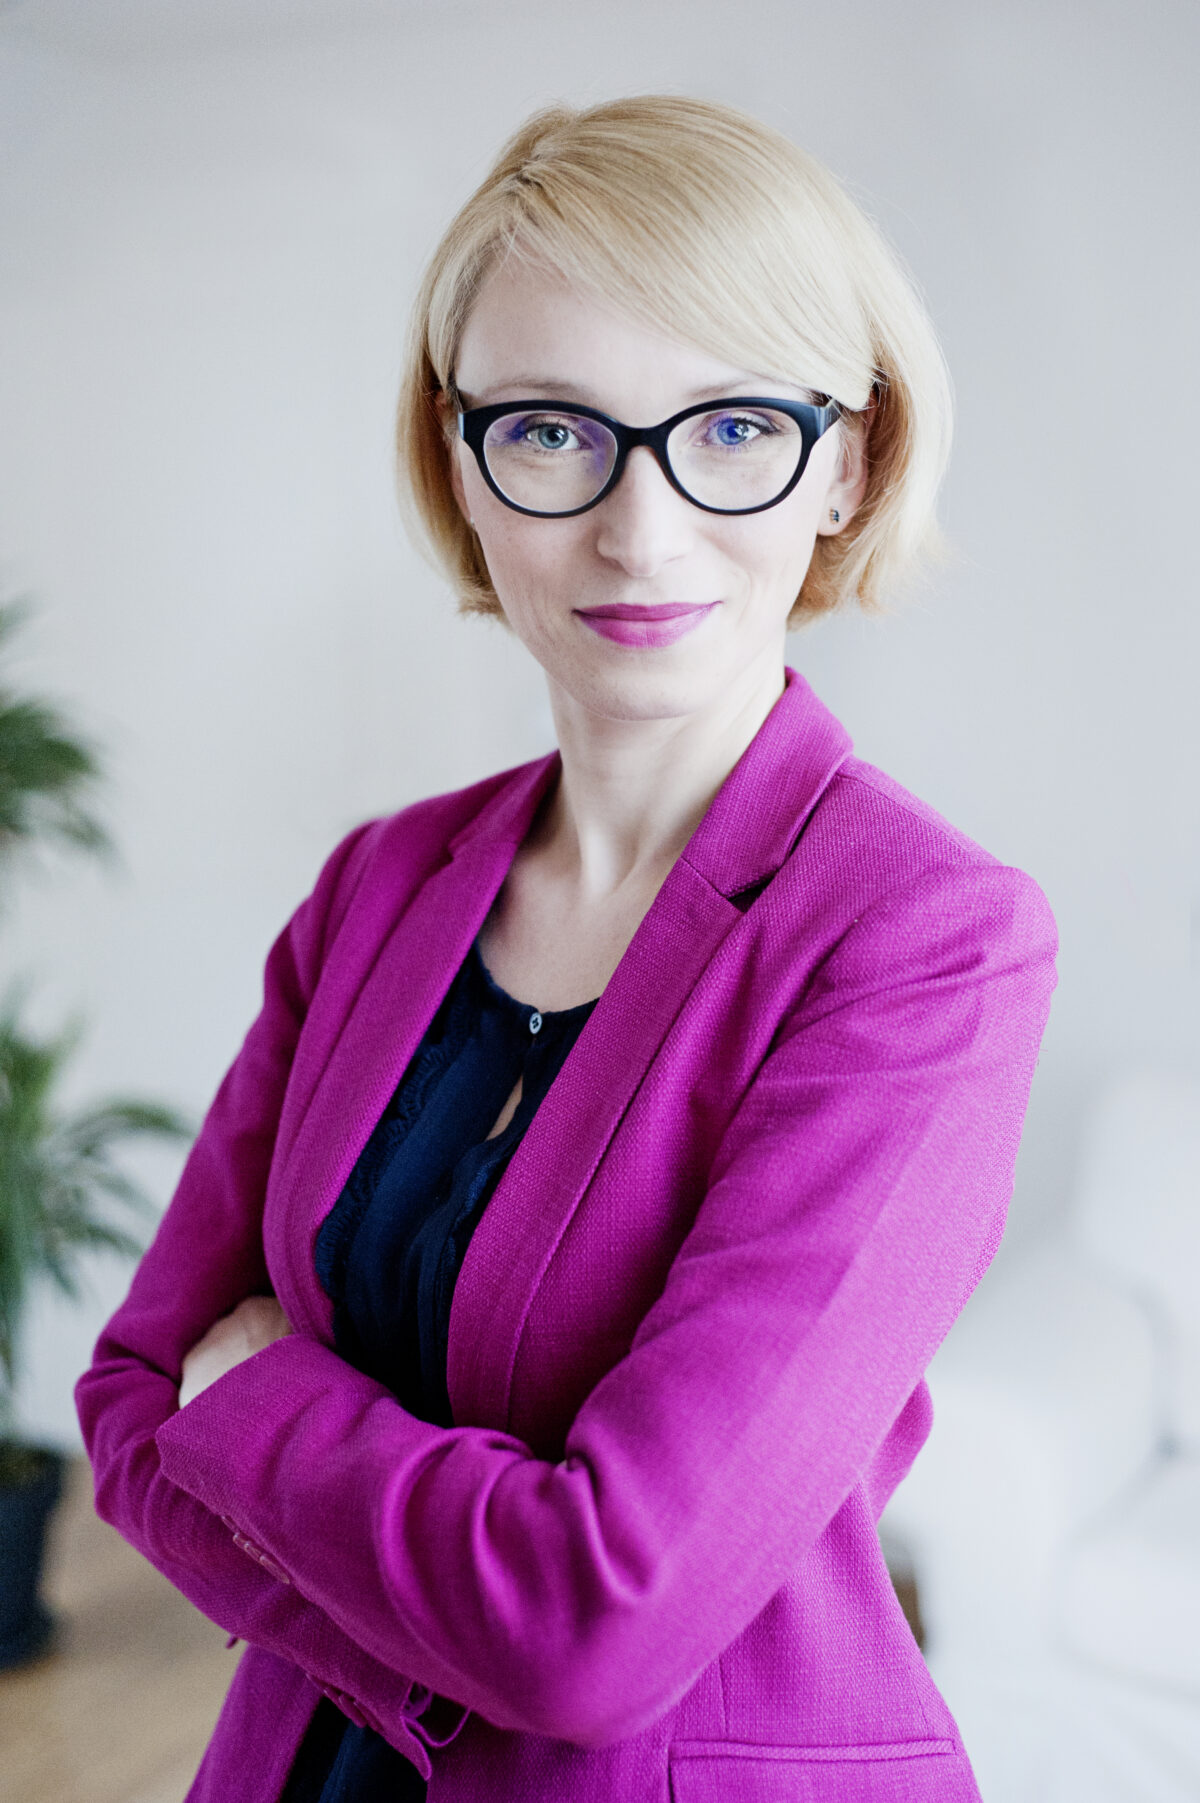 Agata Lewkowska owner of qualitywise.pl